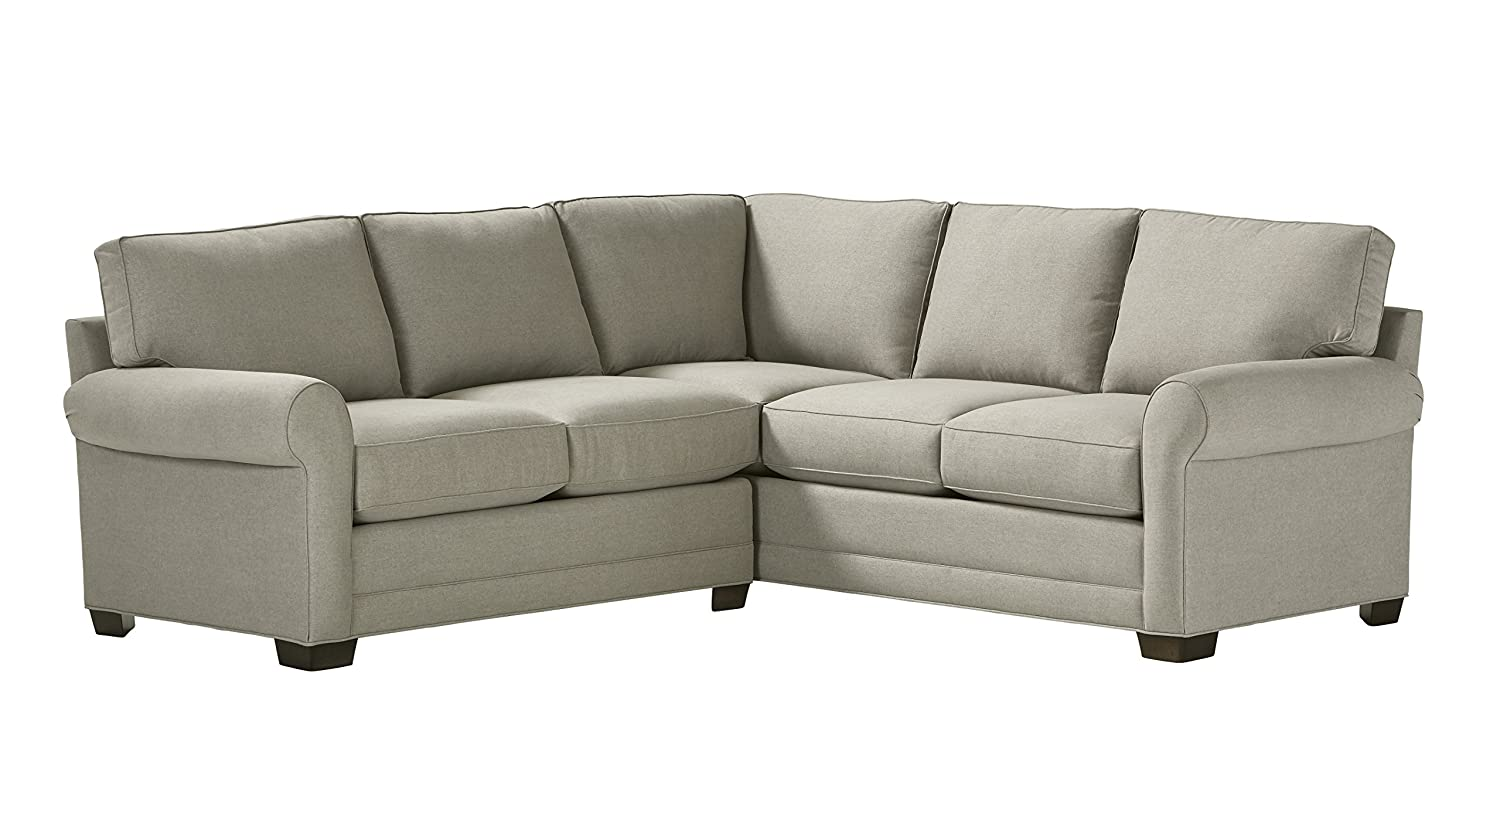 "Stone & Beam KristinPerformance Fabric Sectional Sofa, 93""W, Stone"